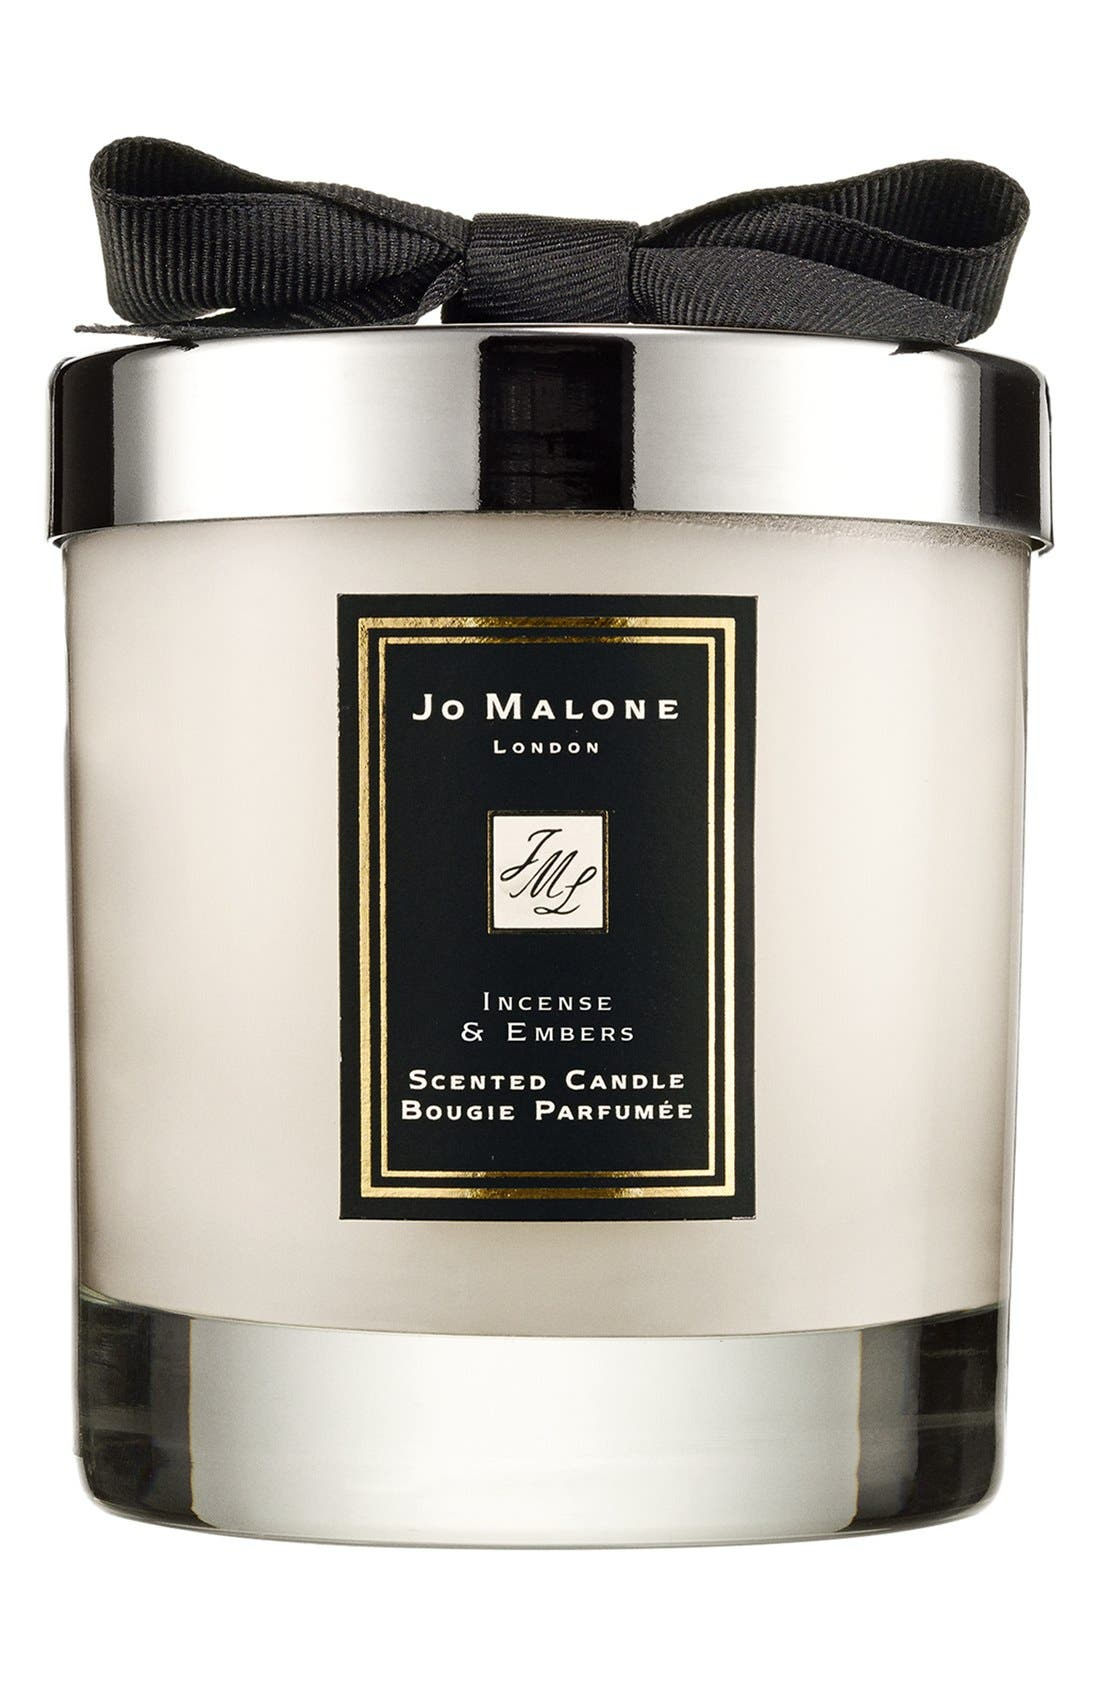 Jo Malone™ 'Just Like Sunday - Incense & Embers' Candle